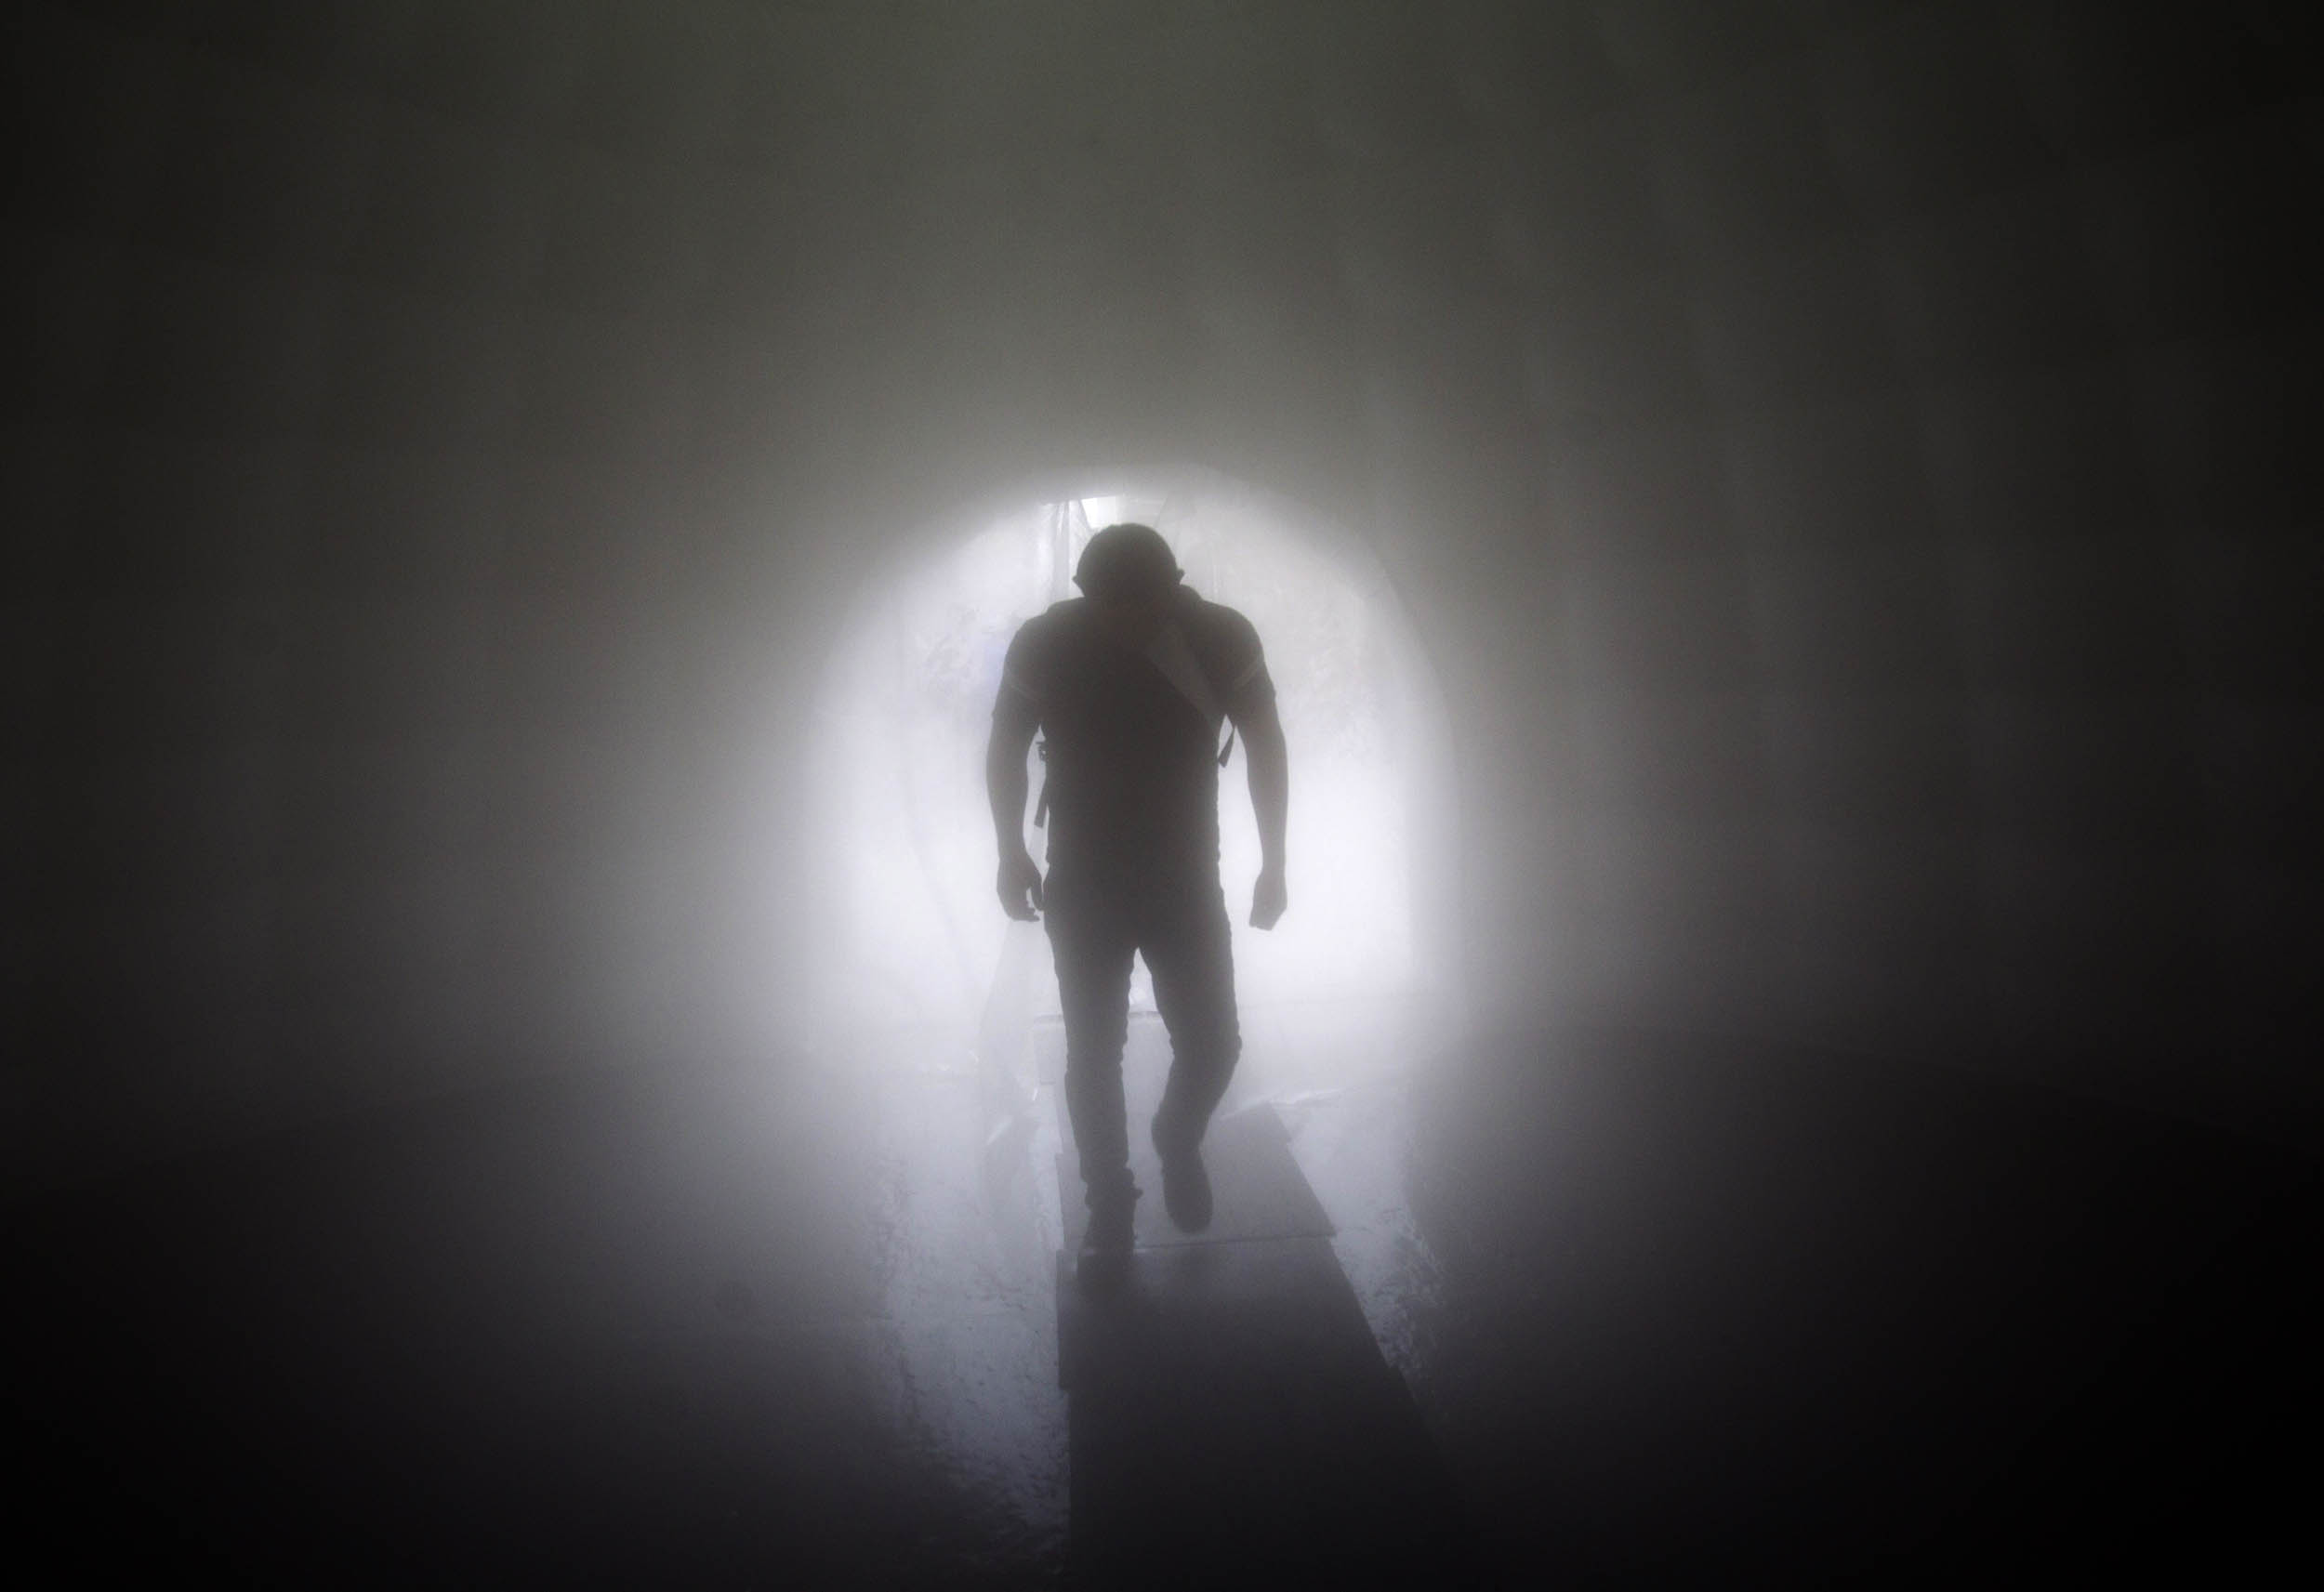 A man walks through a sanitizing tunnel installed outside a subway station in Escobedo, Nuevo Leon, Mexico, on March 29, 2020 as a preventive measure against the spread of the new coronavirus, COVID-19. - The smart cabin consists of an inflatable unit in a circular shape that is permanently spraying a sanitizing product used in hospitals. Photo: Julio Cesar Aguilar